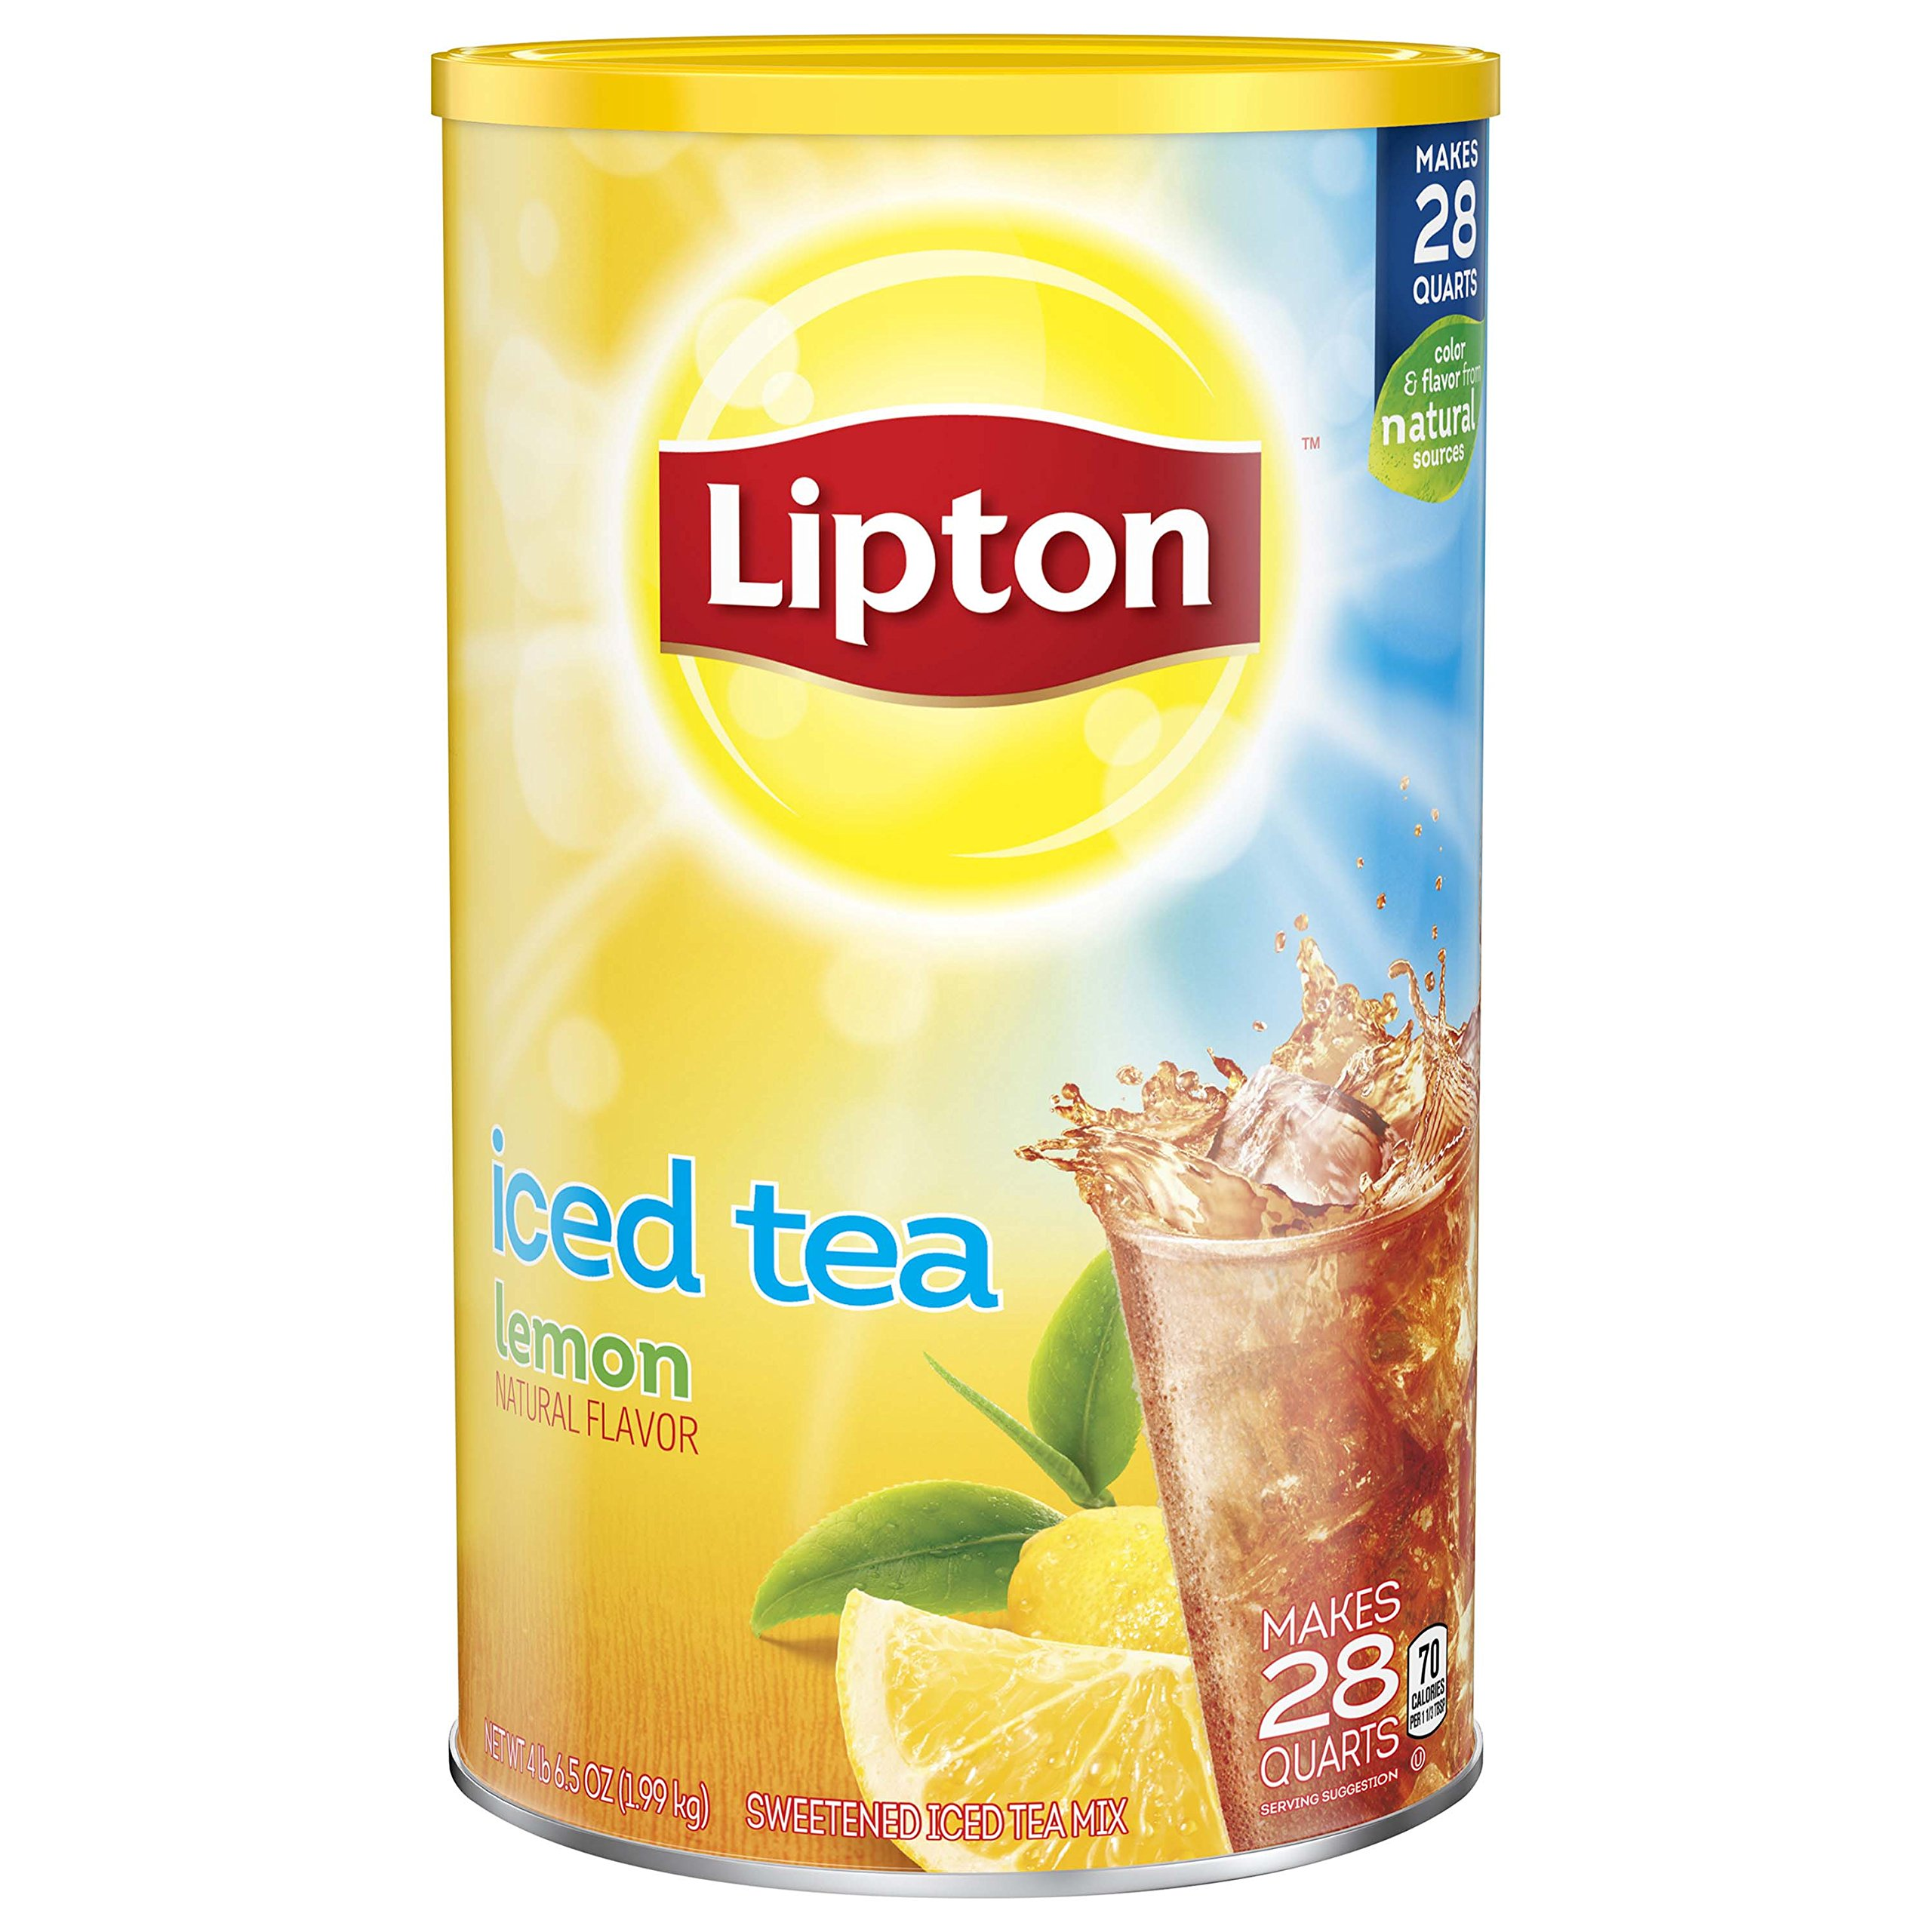 Lipton Iced Tea Mix, Lemon, 28 qt (Pack of two)